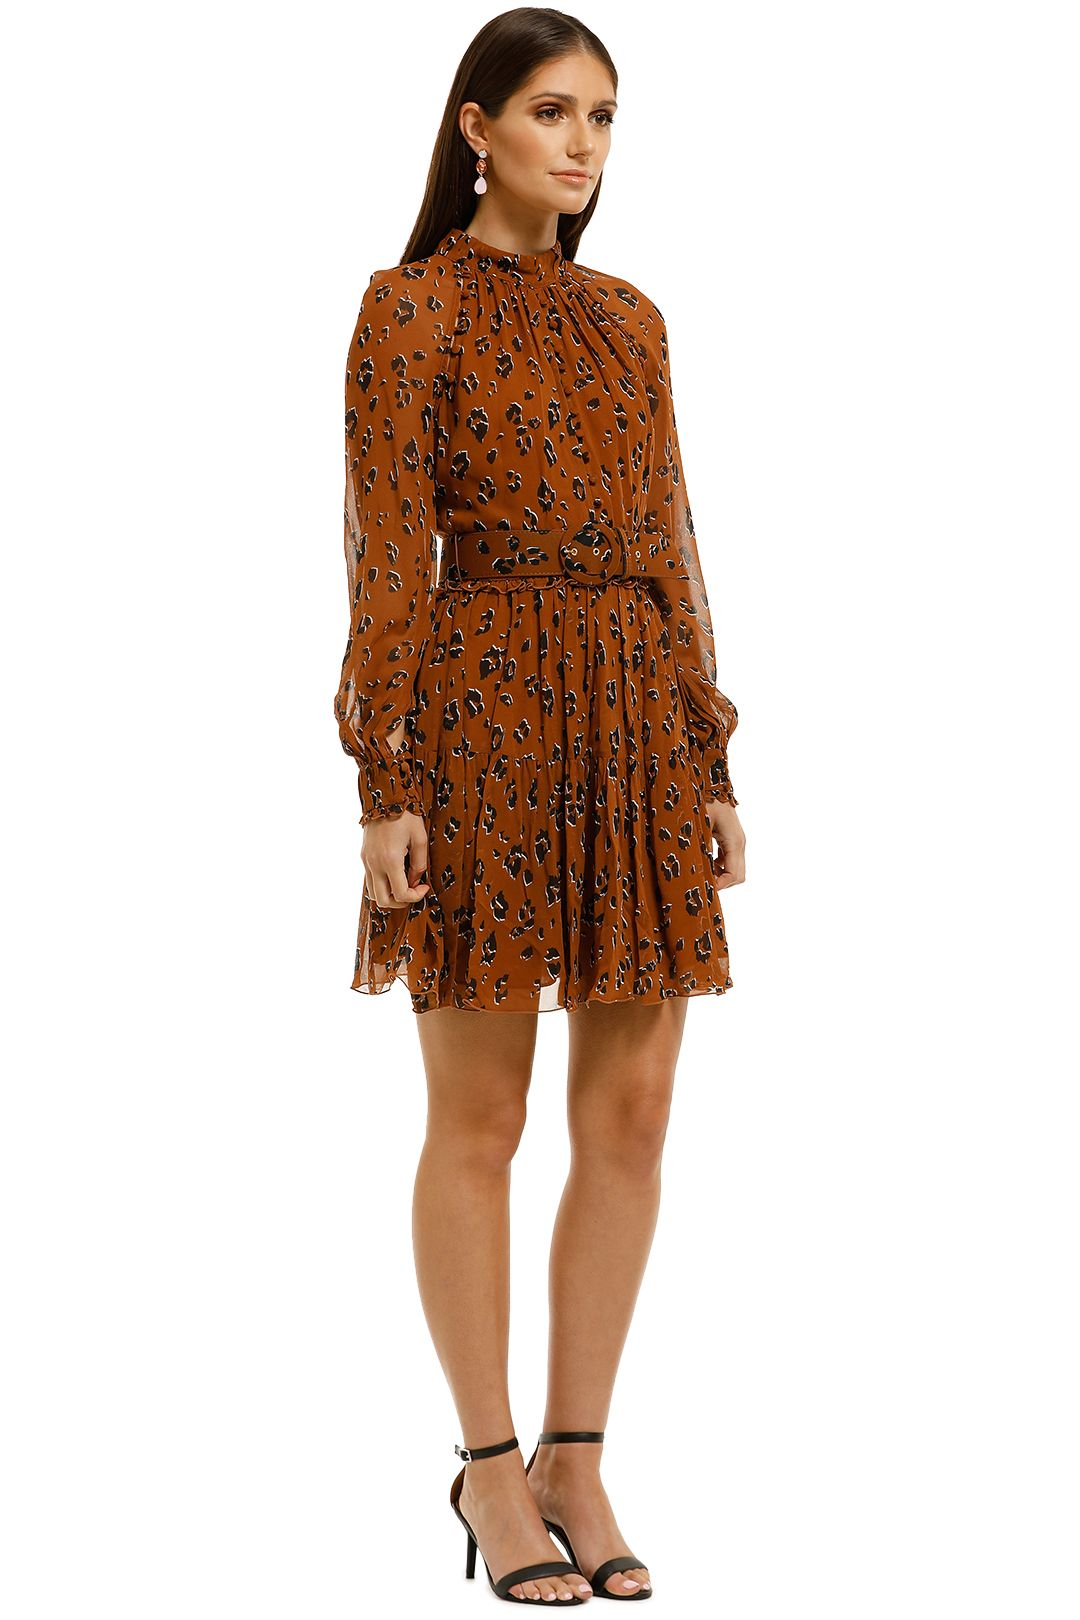 Nicholas-The-Label-High-Neck-Button-Mini-Dress-Tobacco-Multi-Side